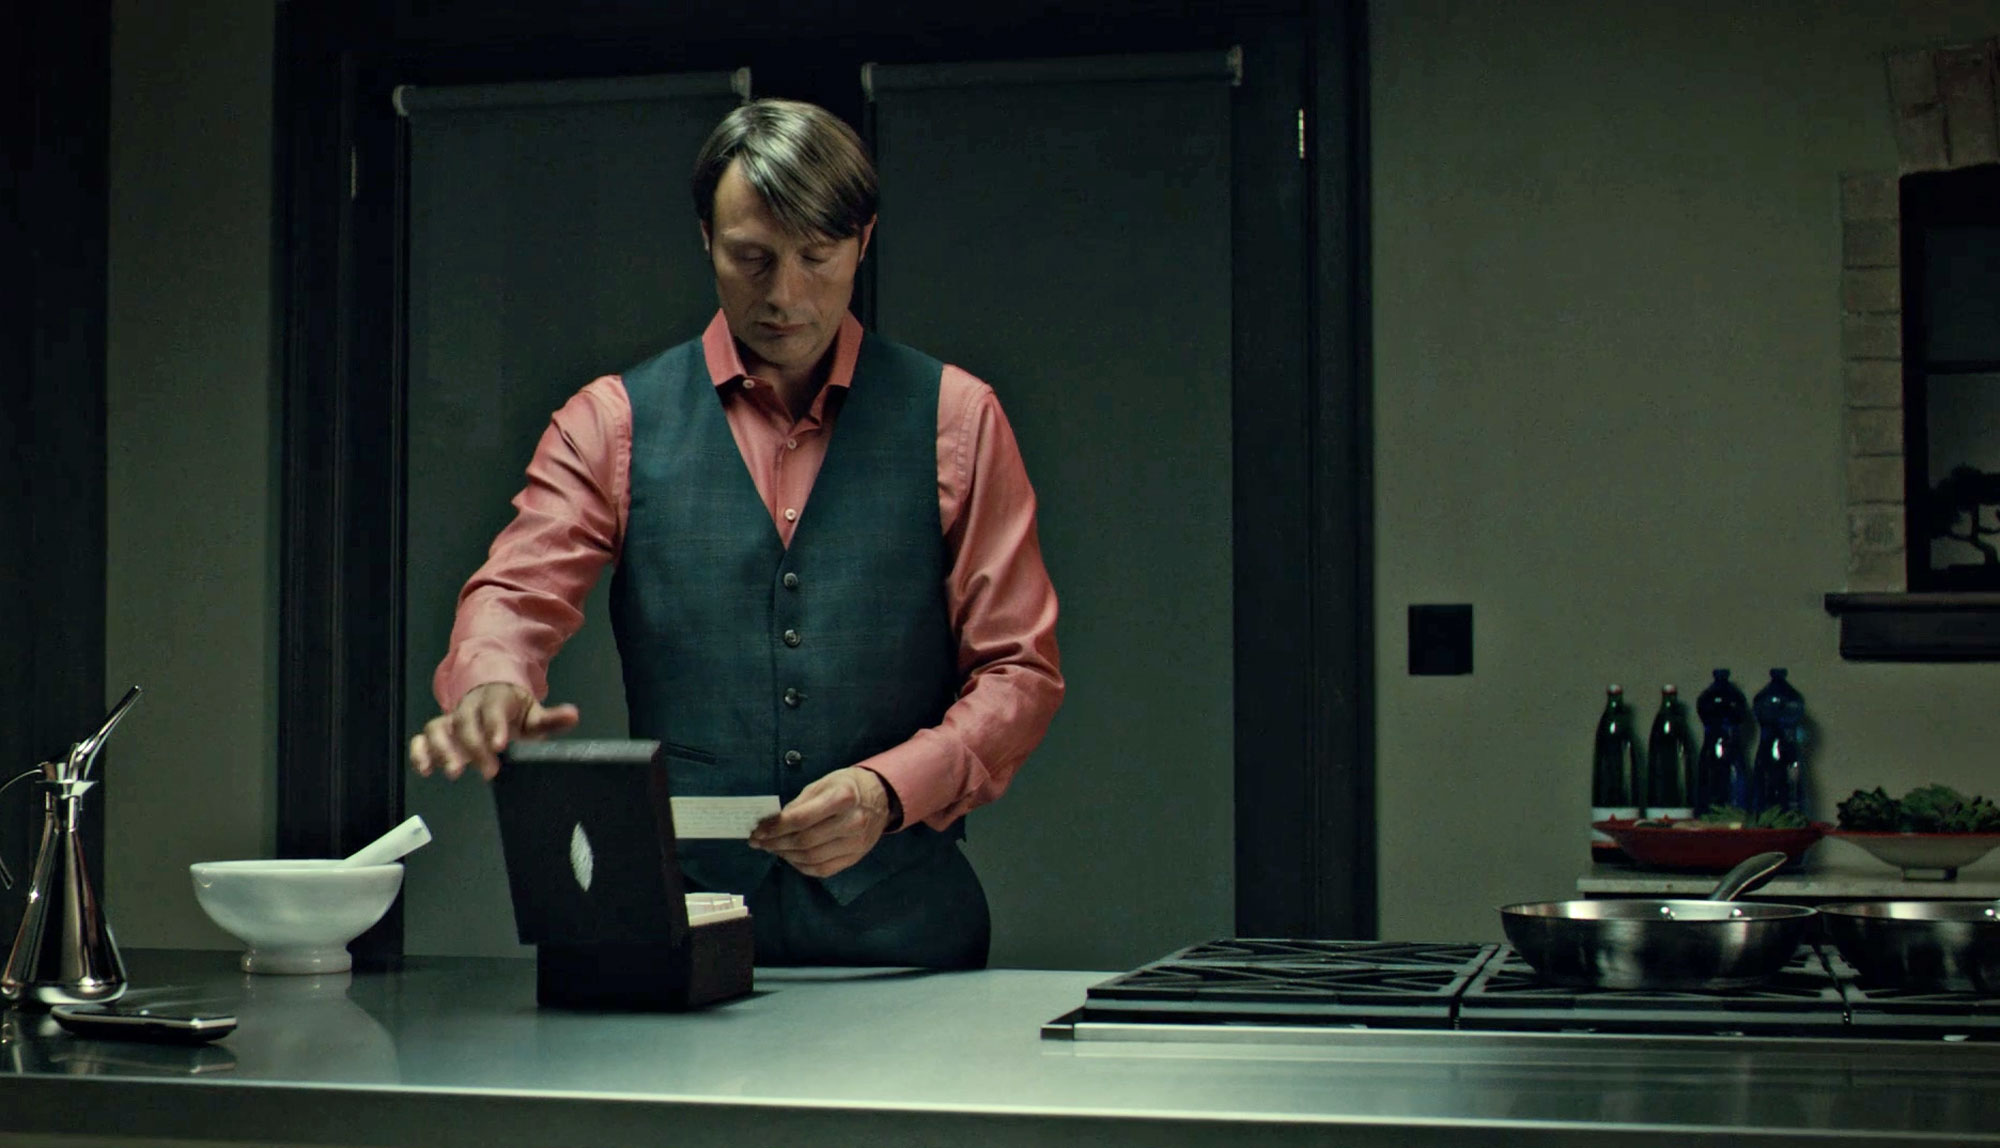 Christopher Hargadon dresses Mads Mikkelsen in a pink shirt and waistcoat